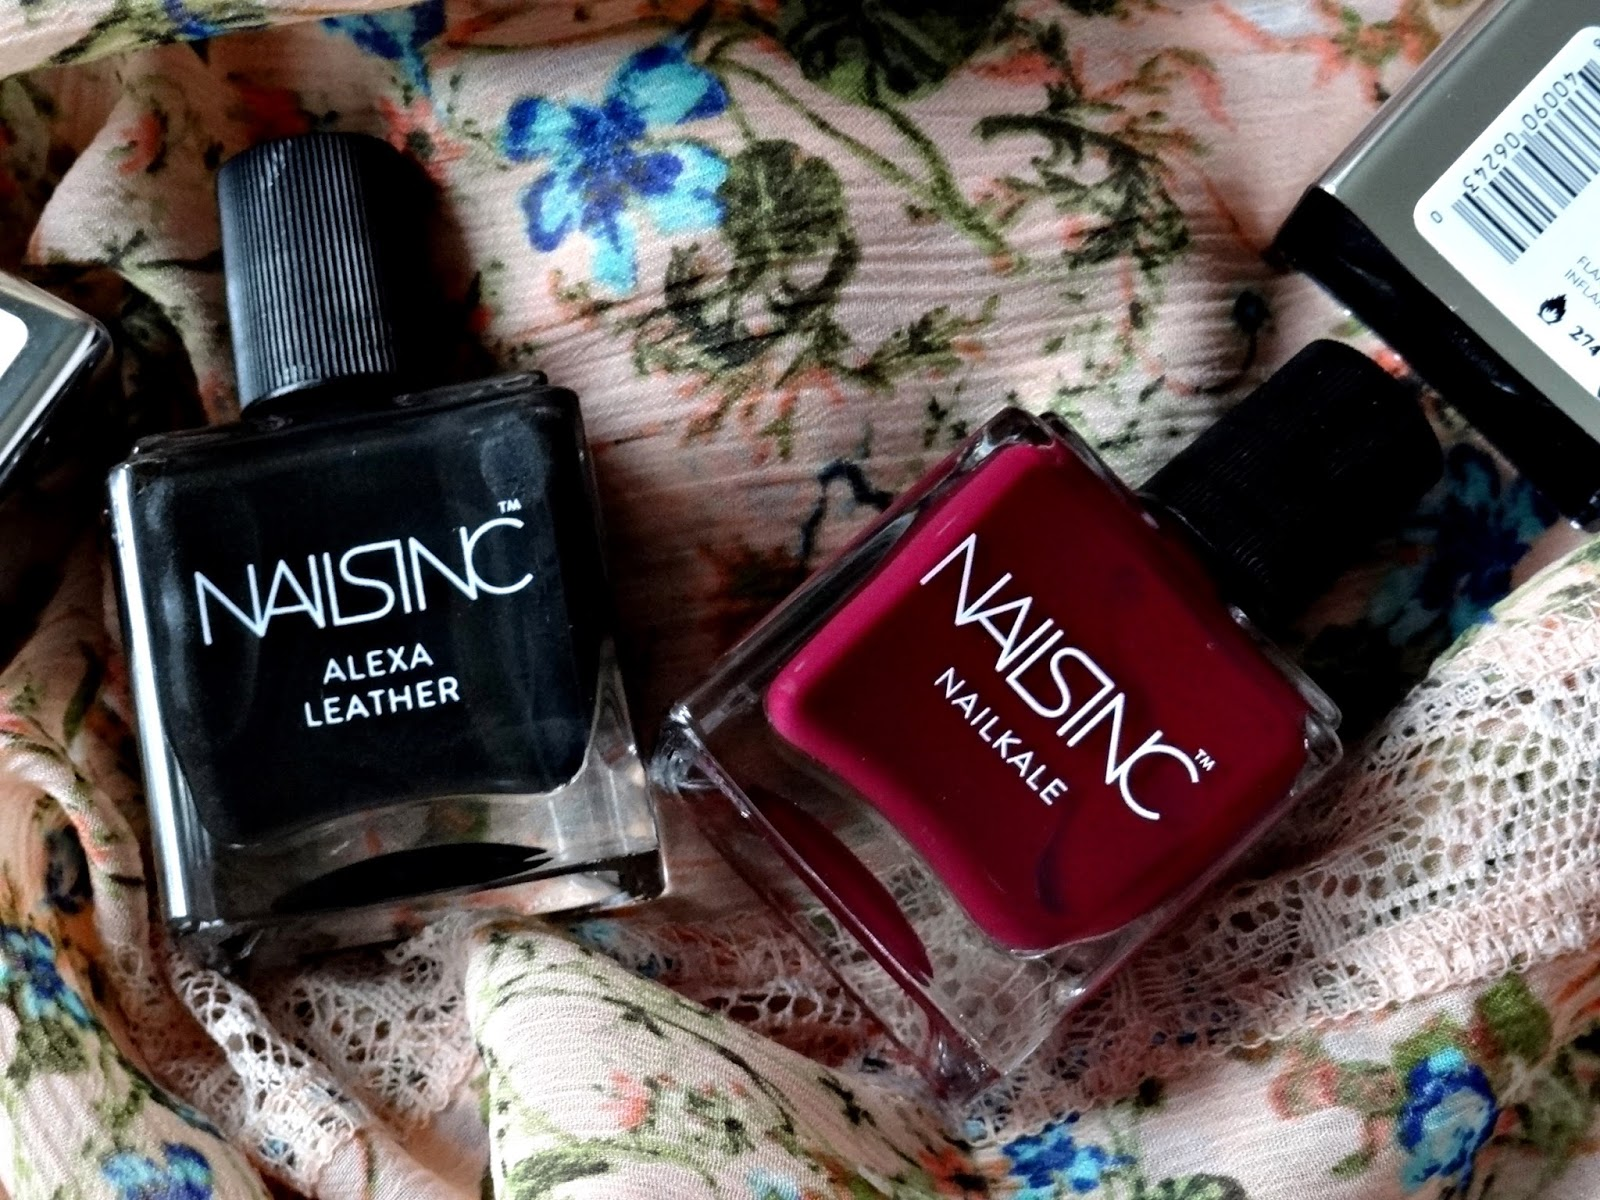 Nails Inc. Nailkale in Holland Walk and Alexa Leather